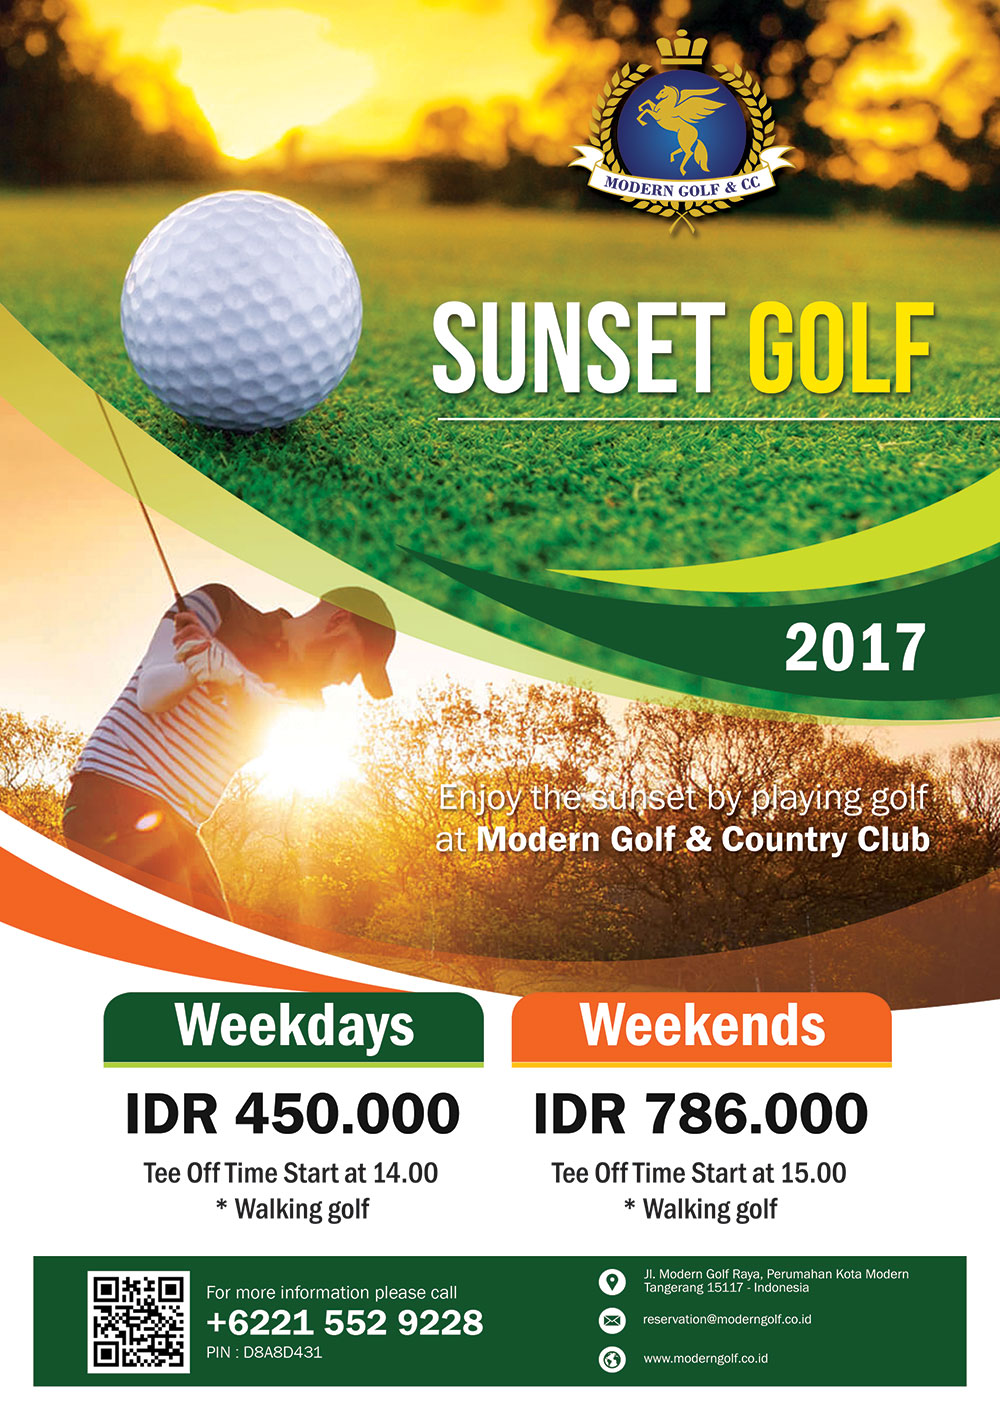 Sunset Golf 2017